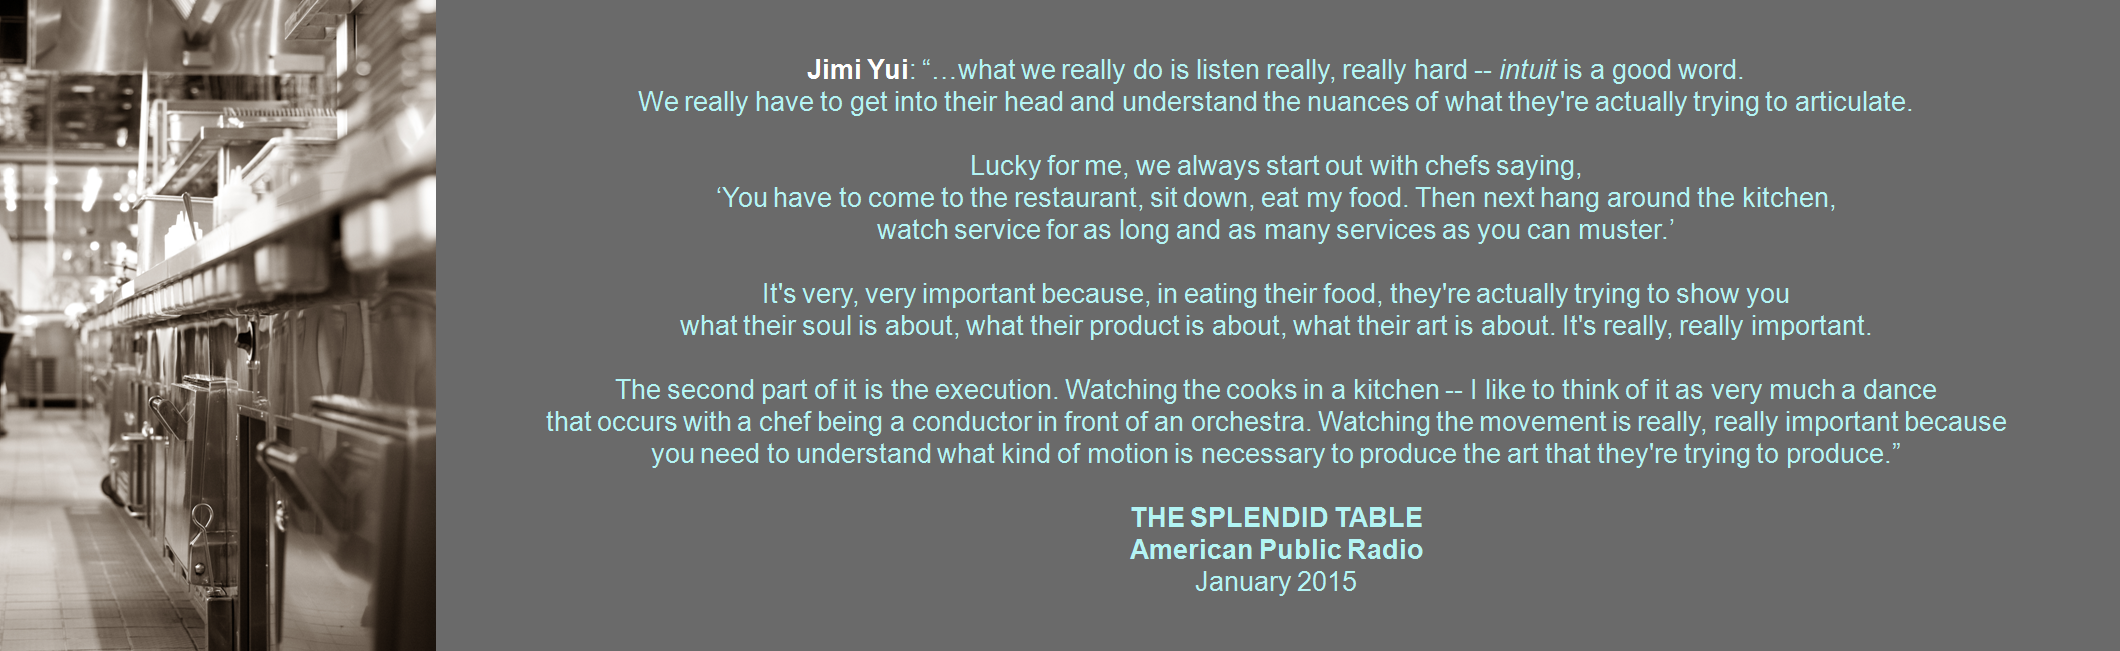 APR The Splendid Table January 2015 Jimi Yui.png